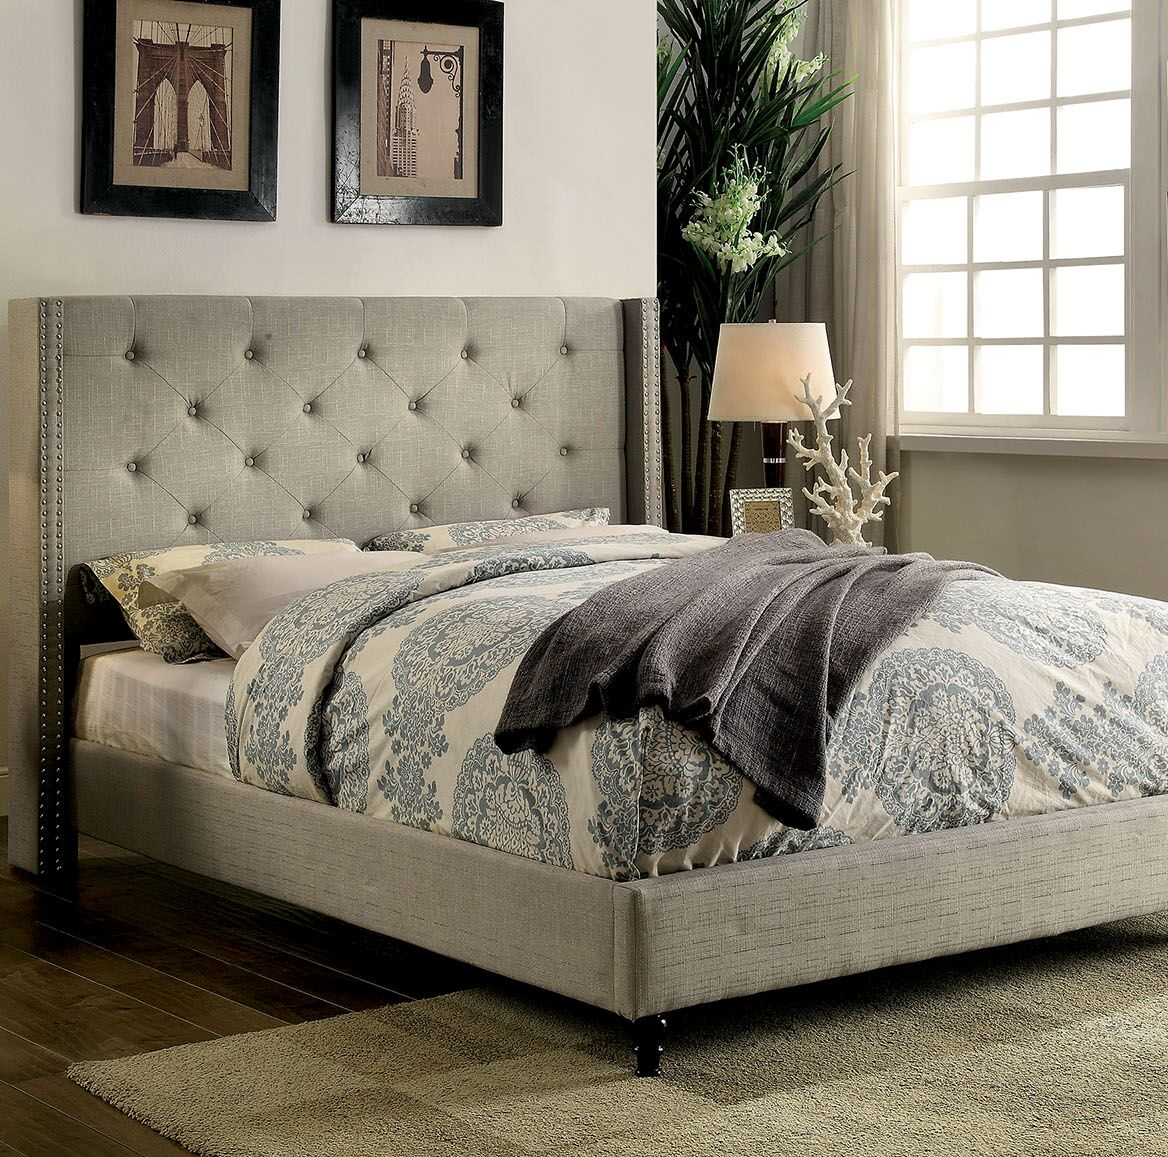 Lanigan Upholstered Wingback Bed Size: Full, Color: Warm Gray